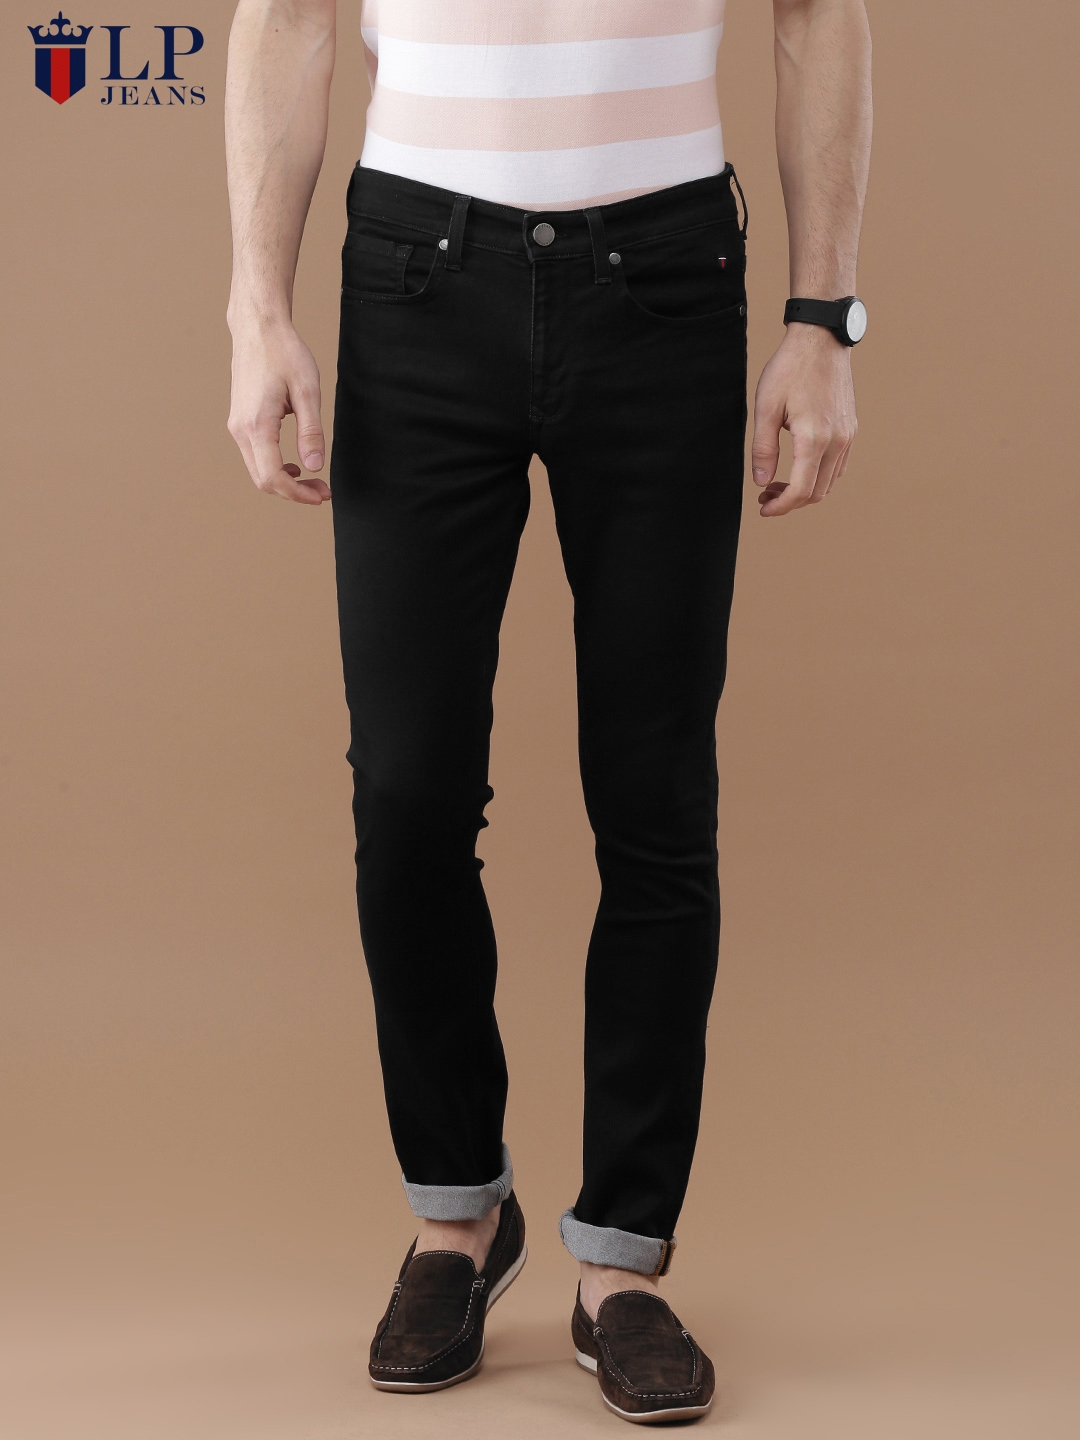 f8ebfbe9c75 Louis Philippe Jeans Men Black Slim Fit Low-Rise Clean Look Stretchable  Jeans